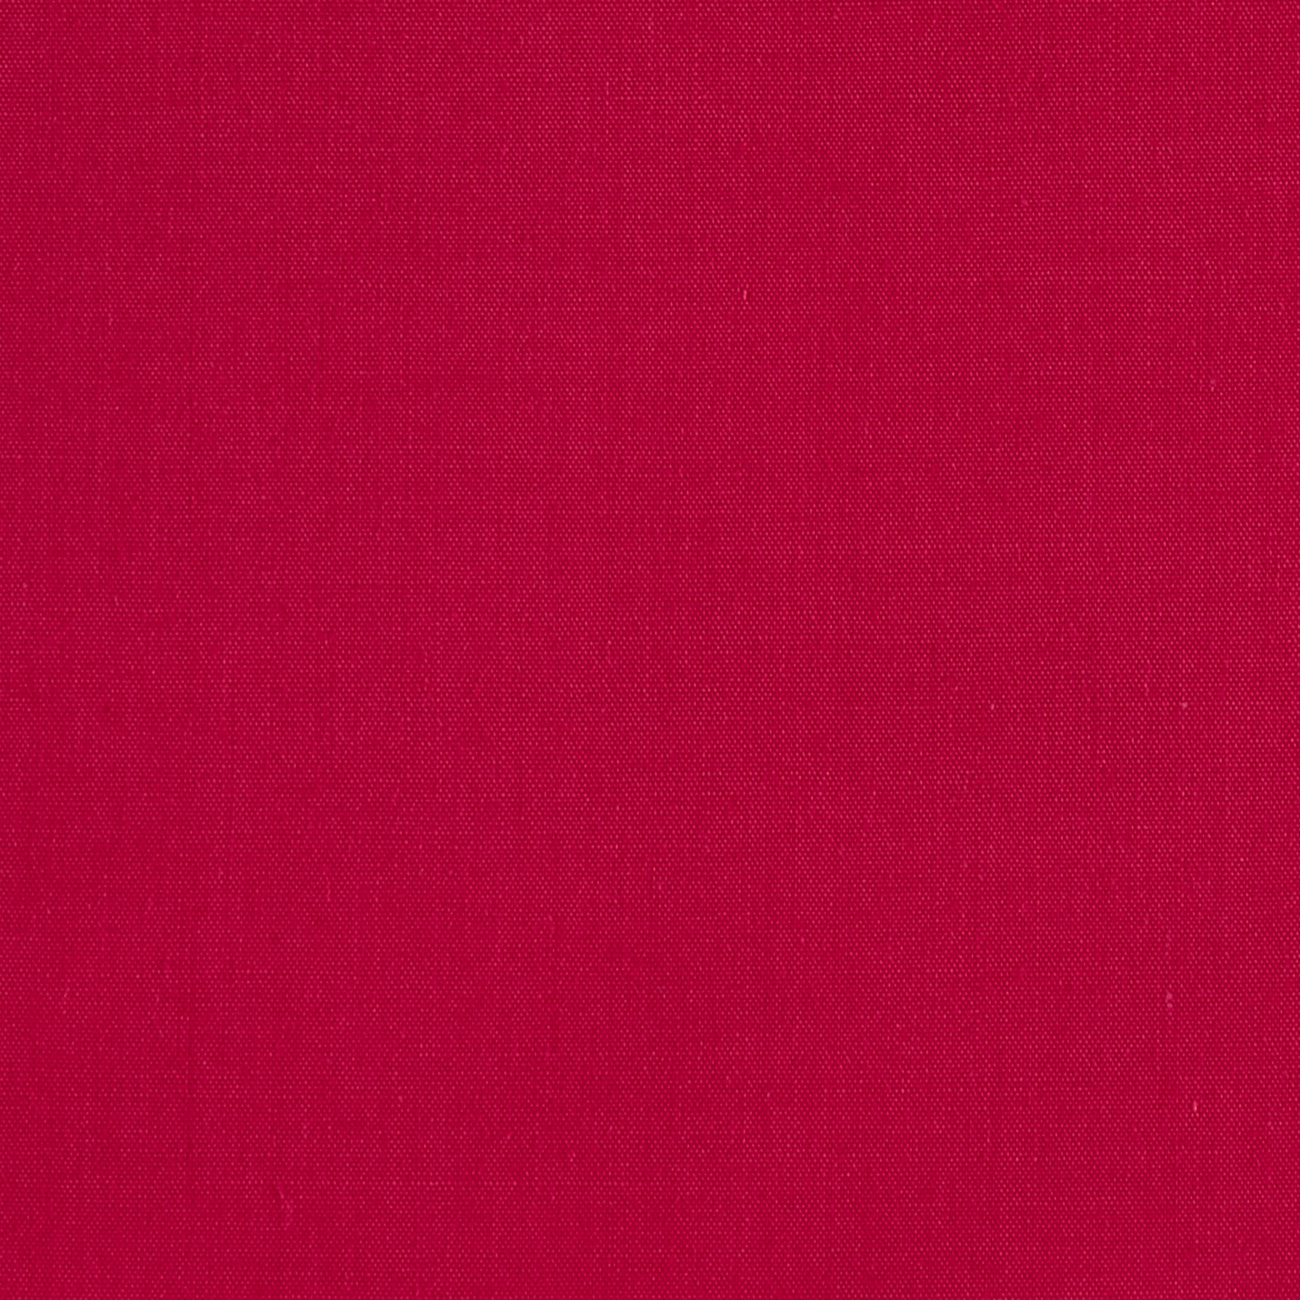 60'' Poly Cotton Broadcloth Fuchsia Fabric by Ben in USA